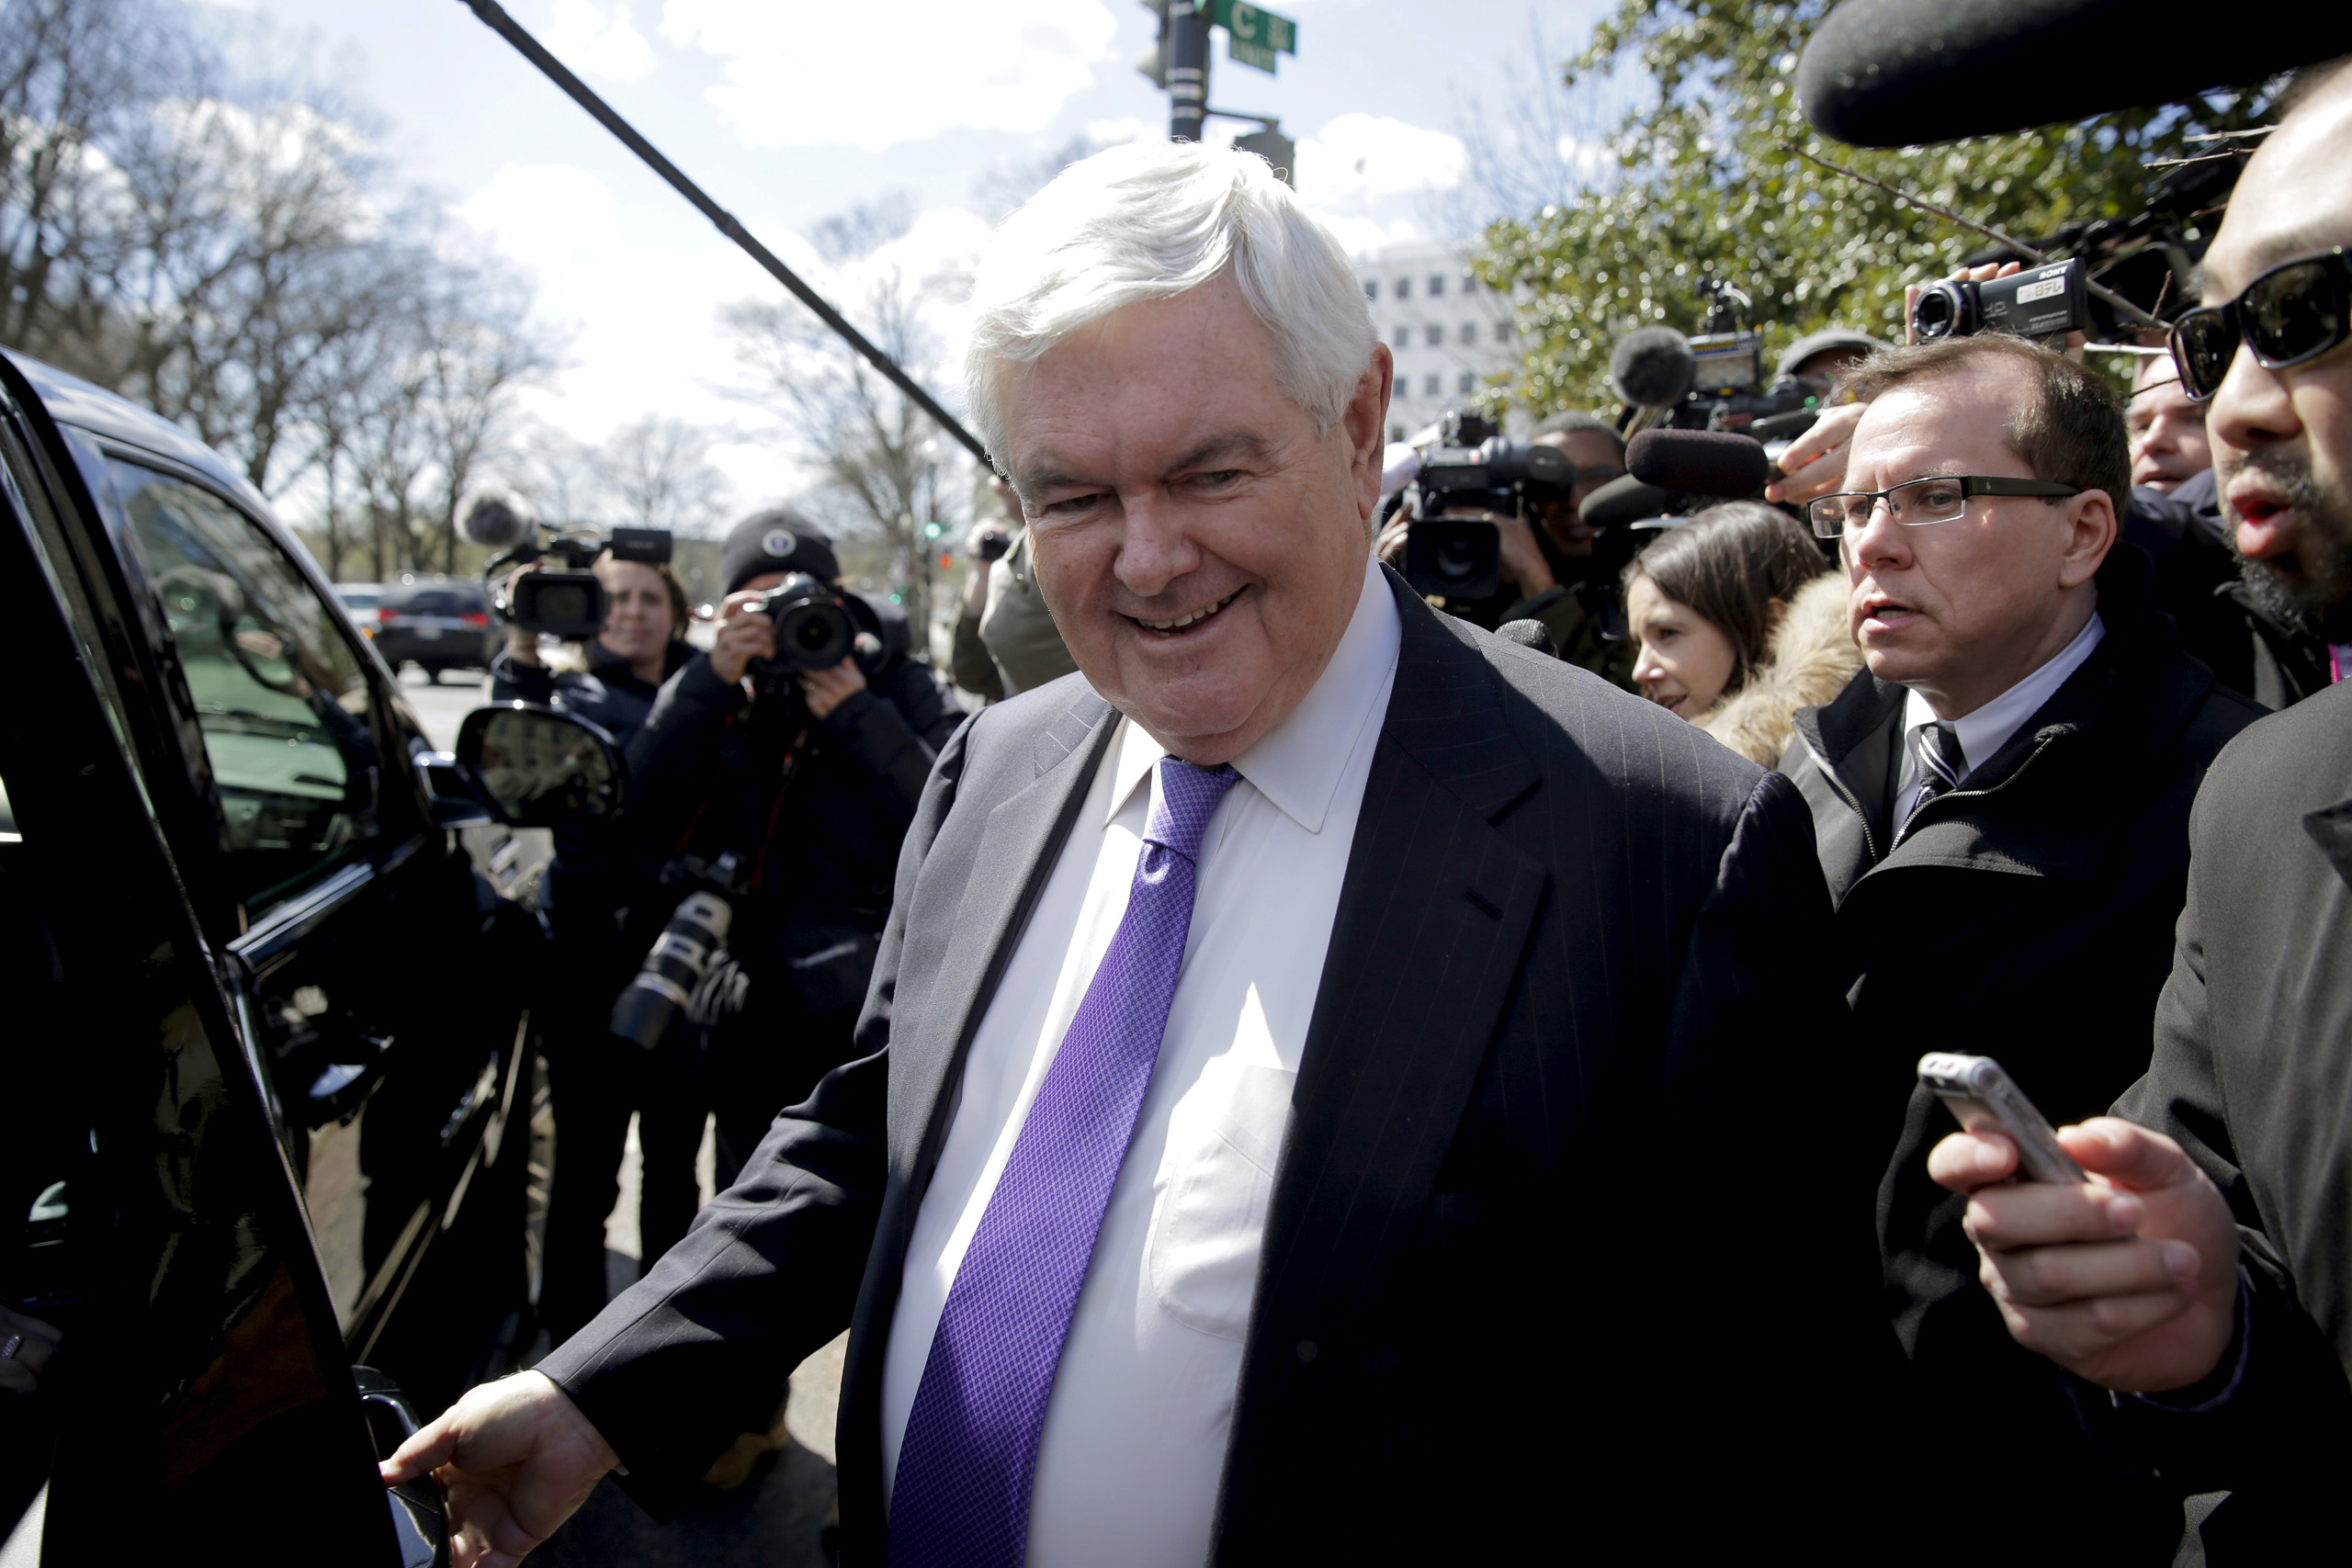 Newt Gingrich is followed by the media as he walks from a meeting with Republican presidential candidate Donald Trump in Washington, March 21, 2016.